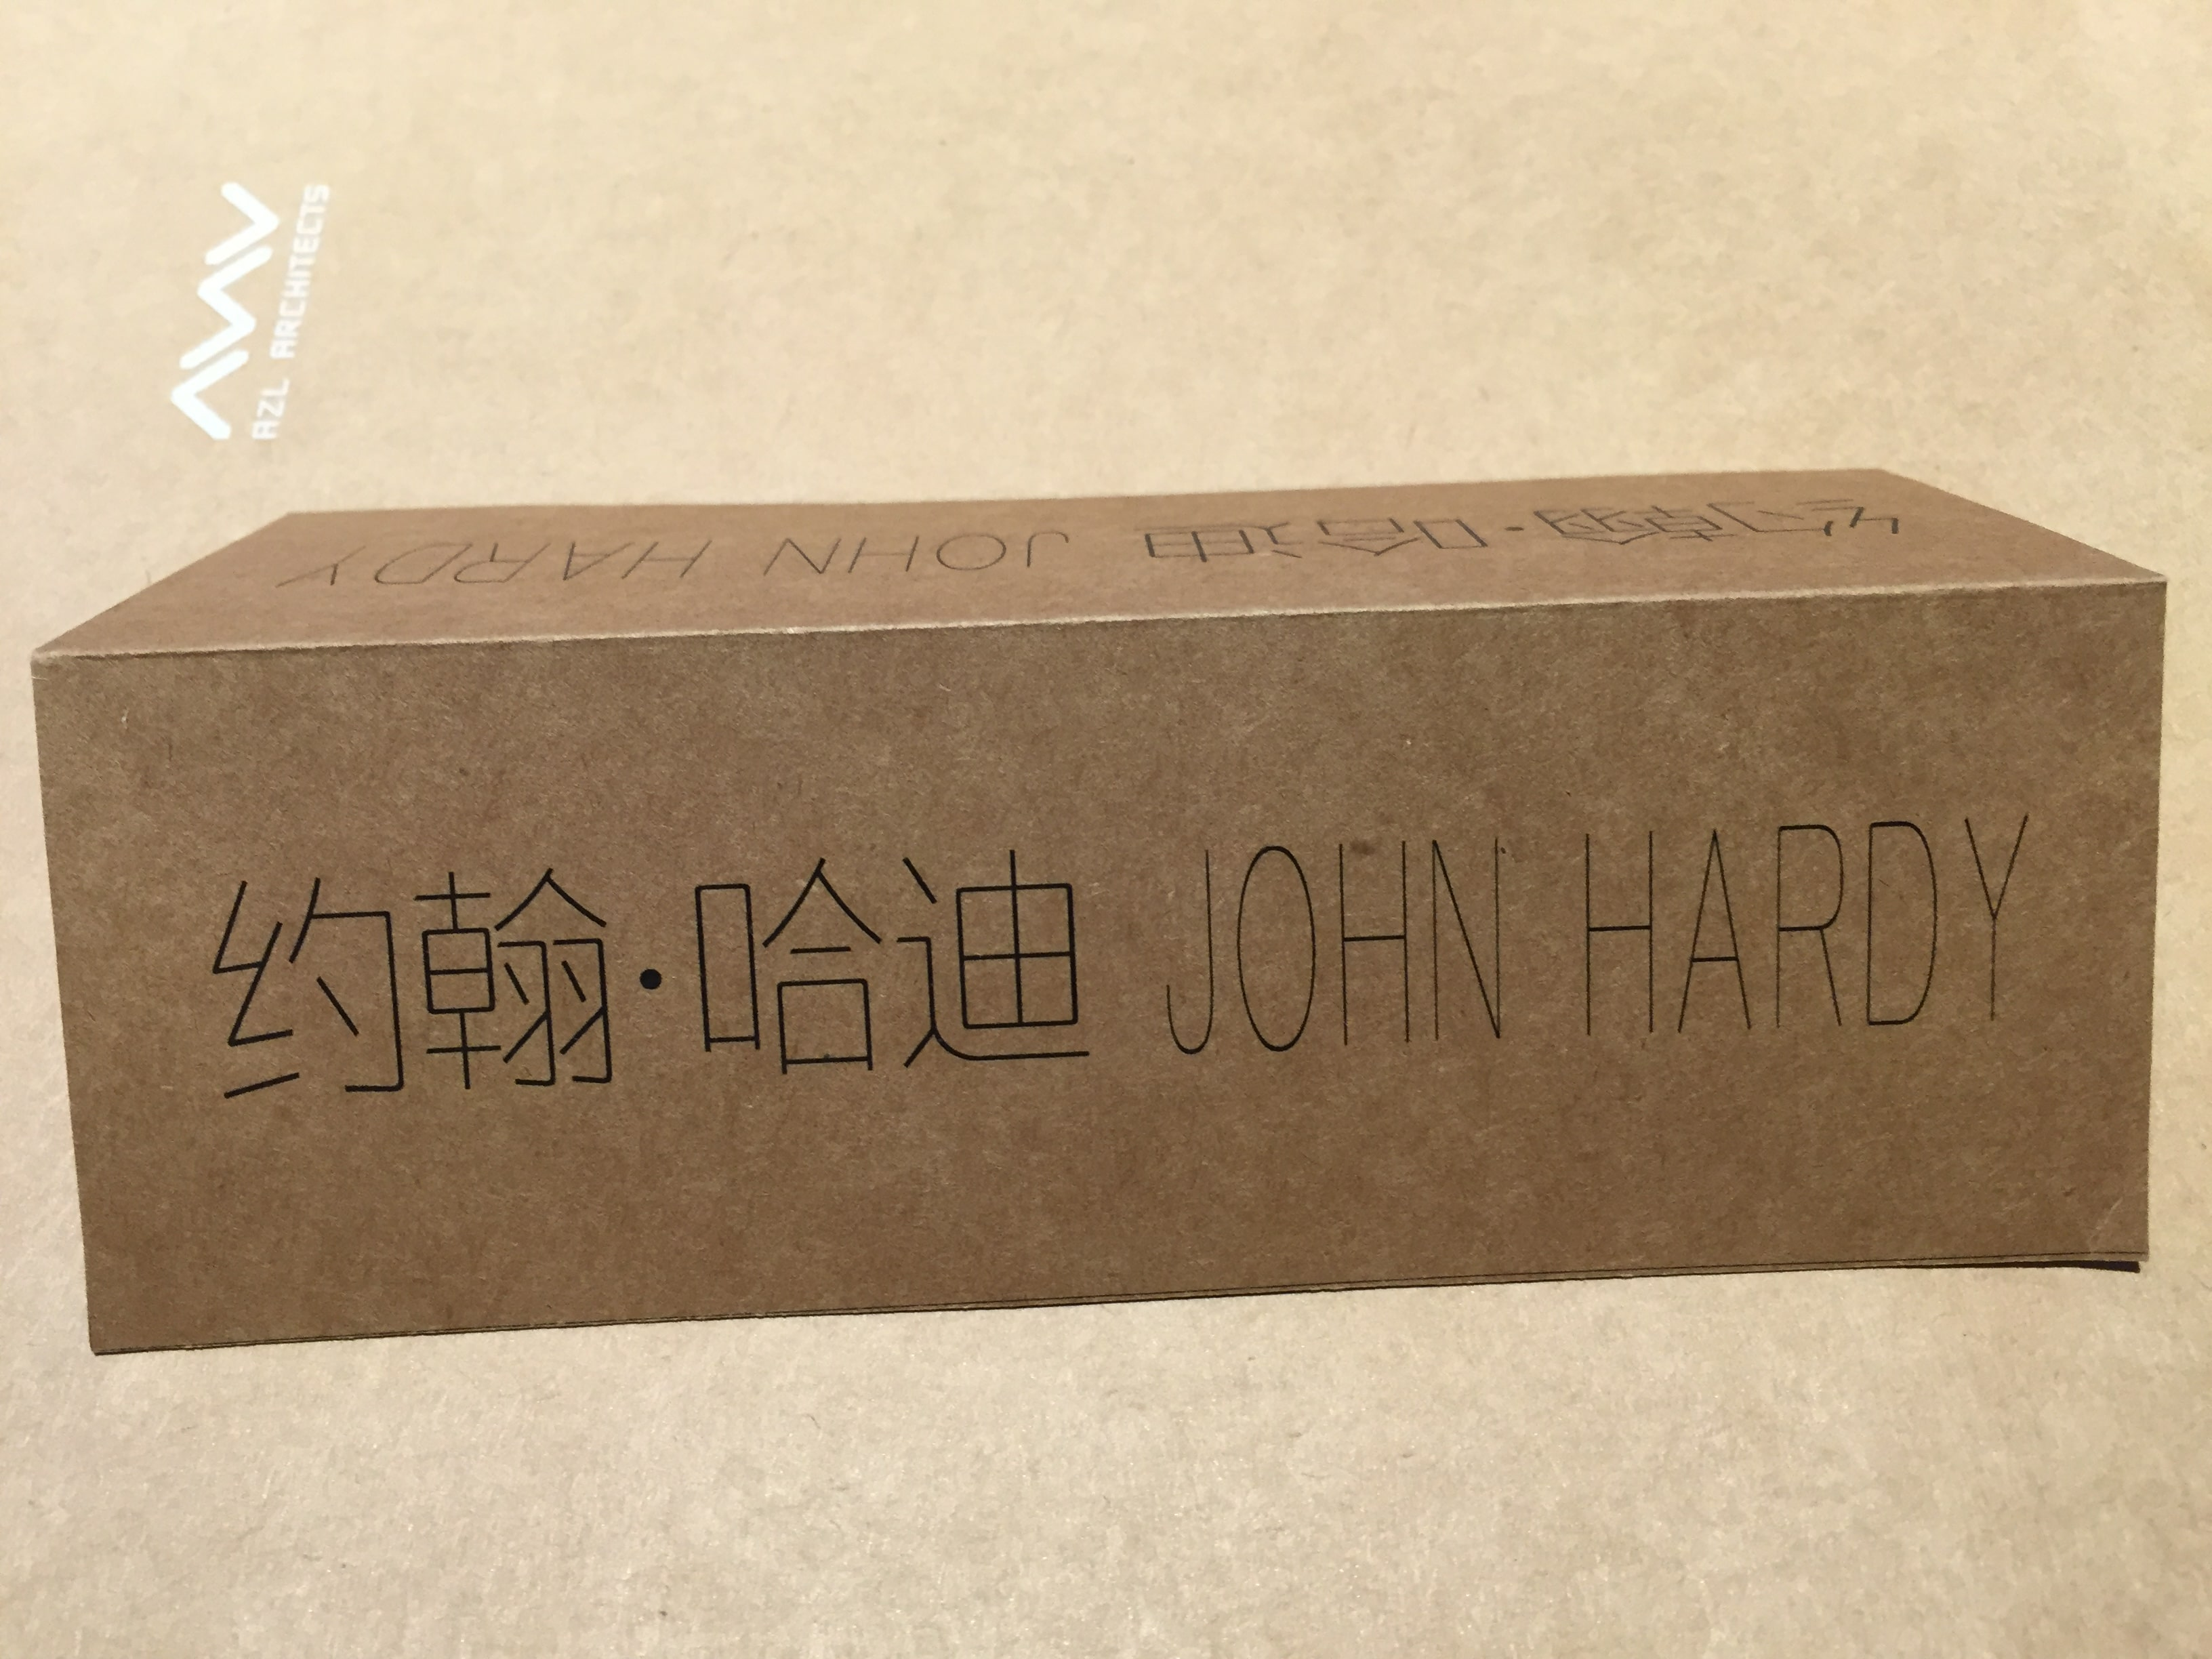 John Hardy in Chinese characters